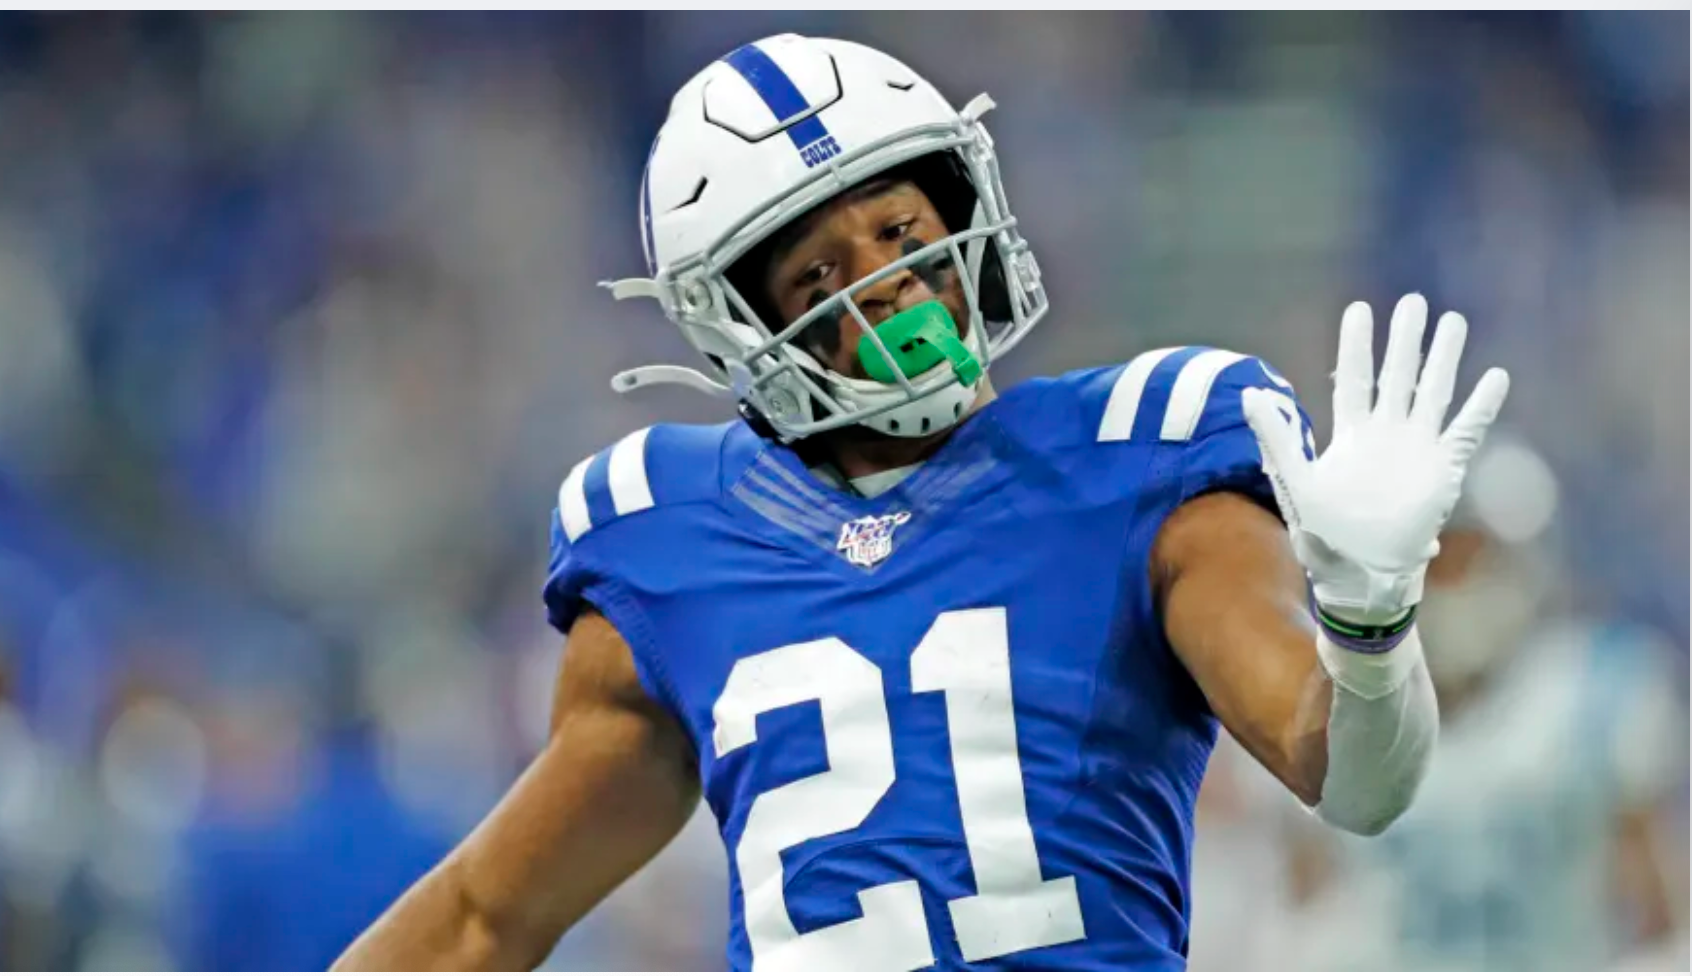 Colts RB Nyheim Hines